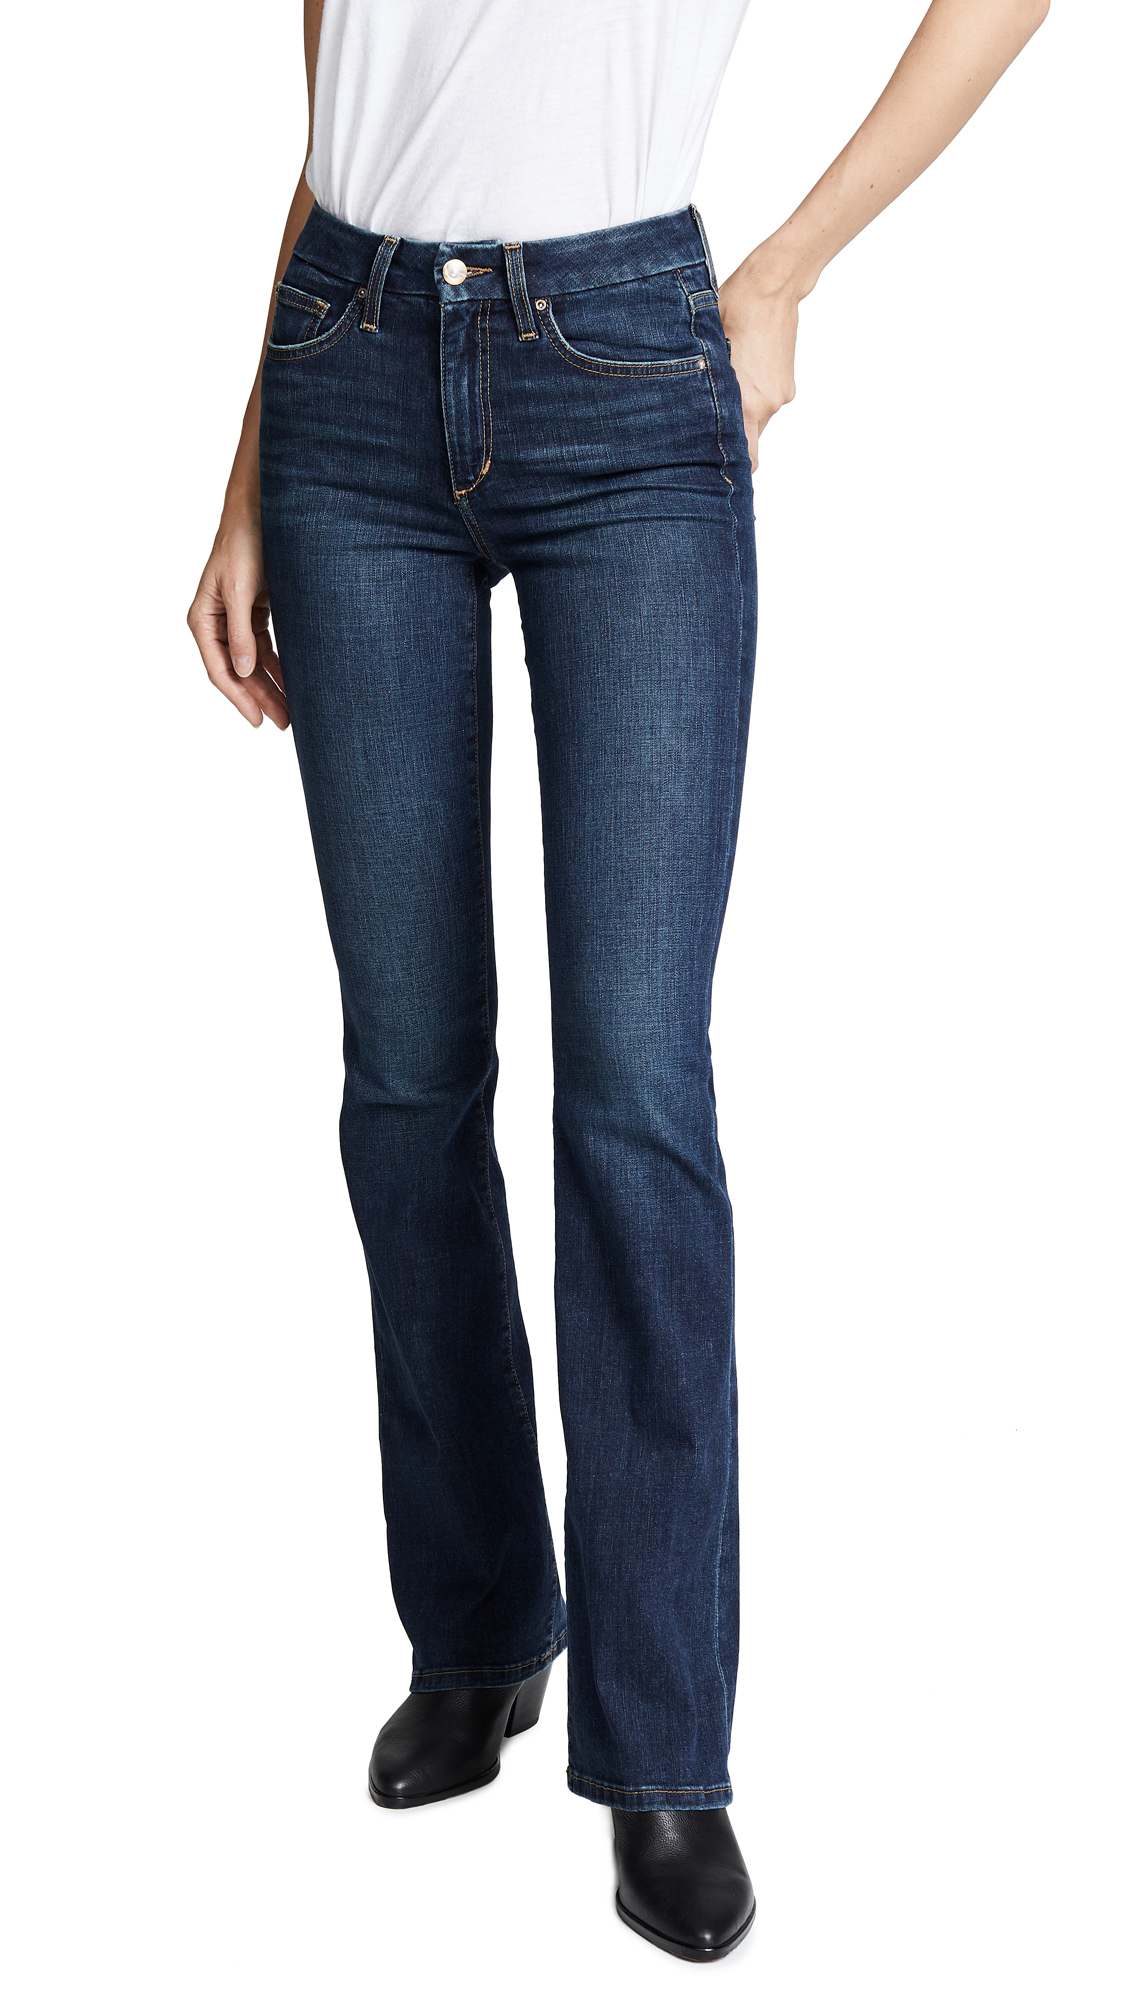 The High Rise Honey Bootcut Jeans